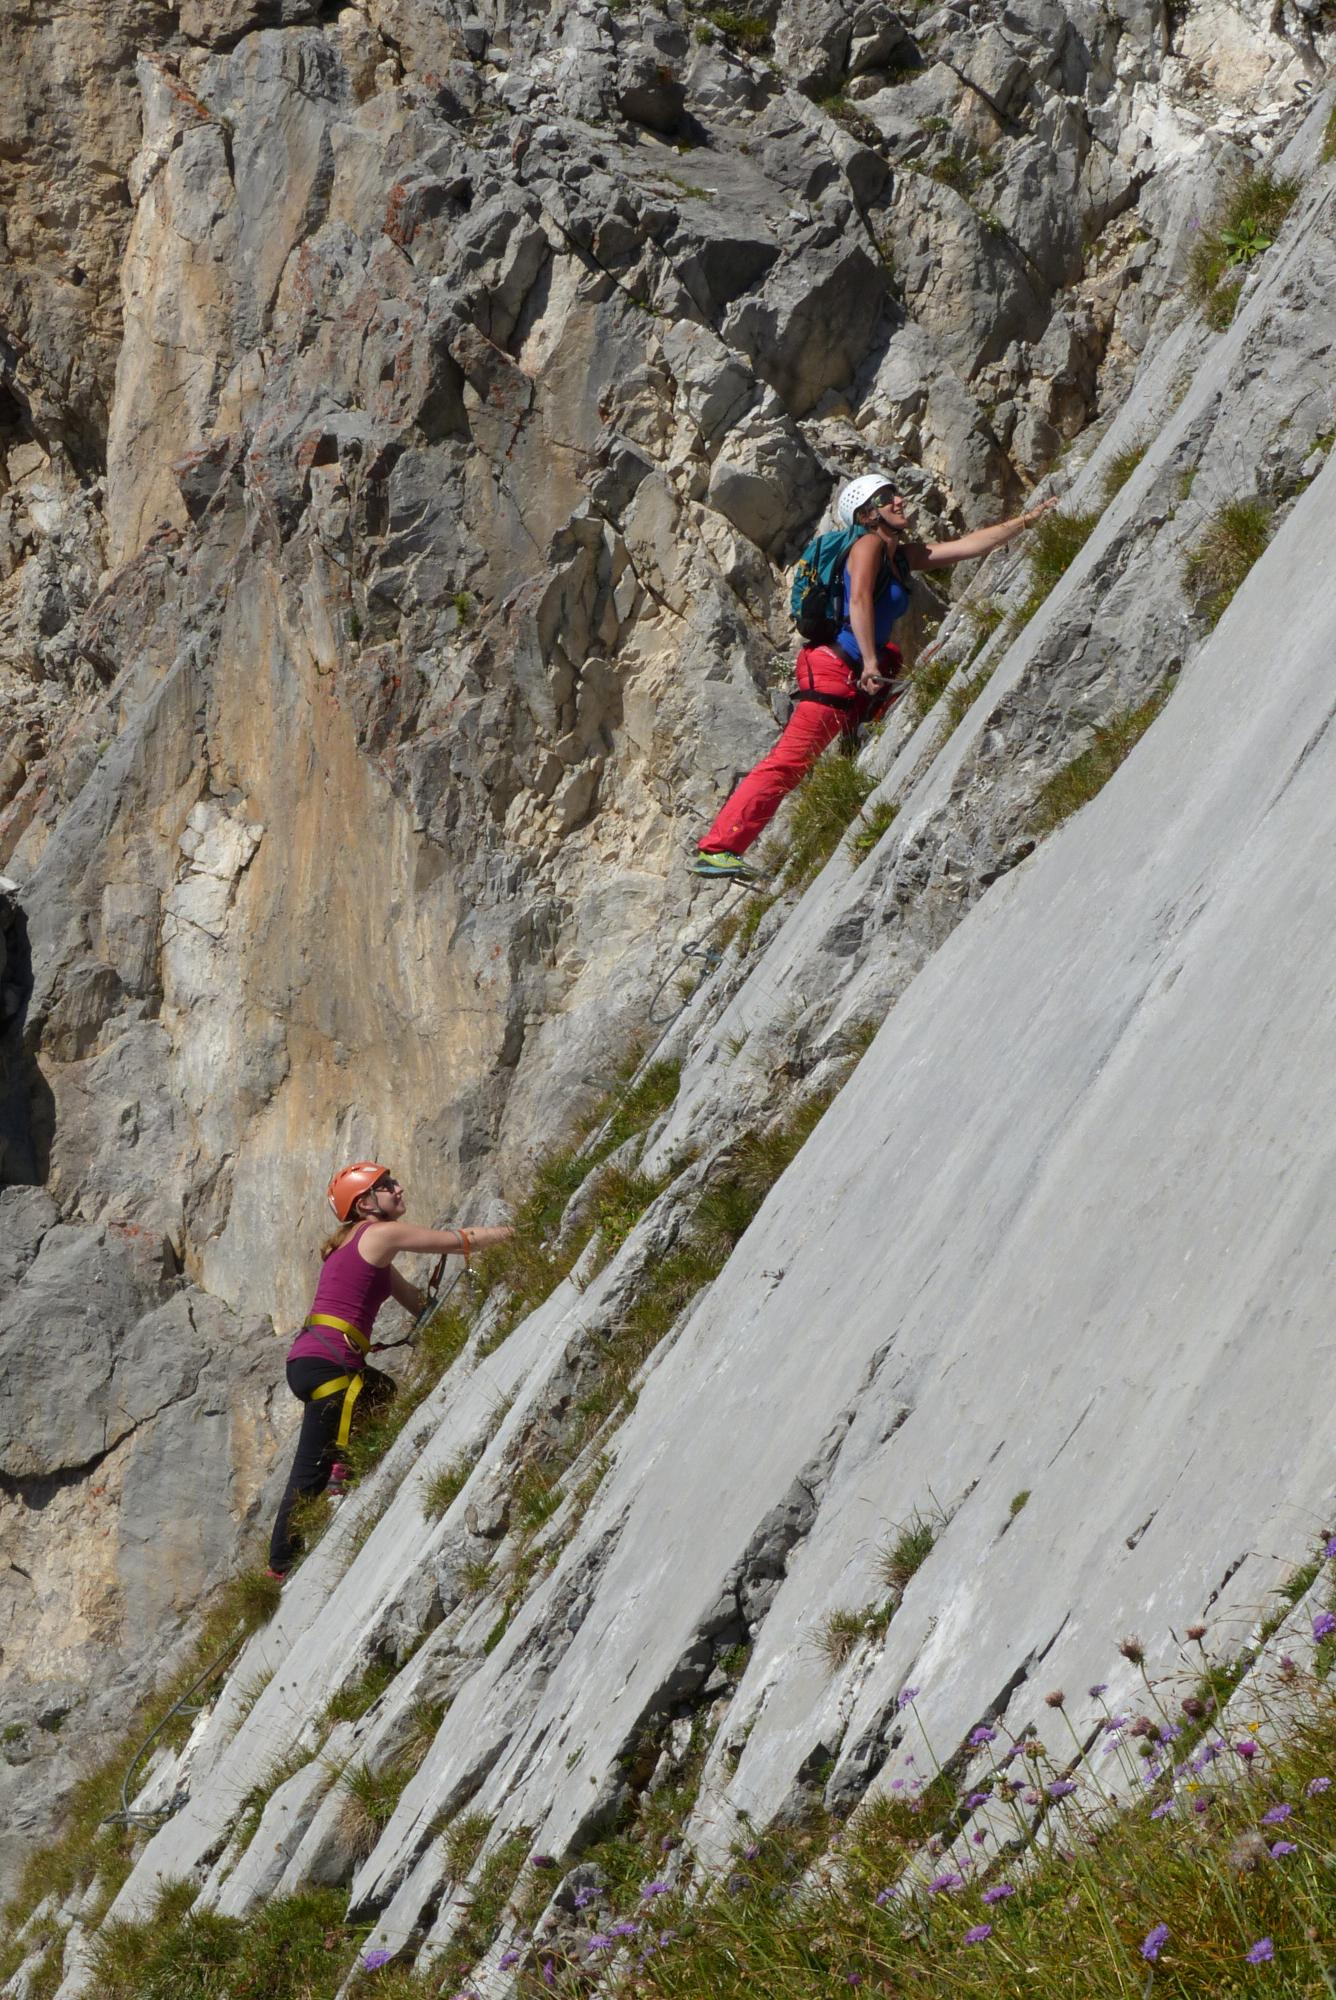 La Videmanette via ferrata